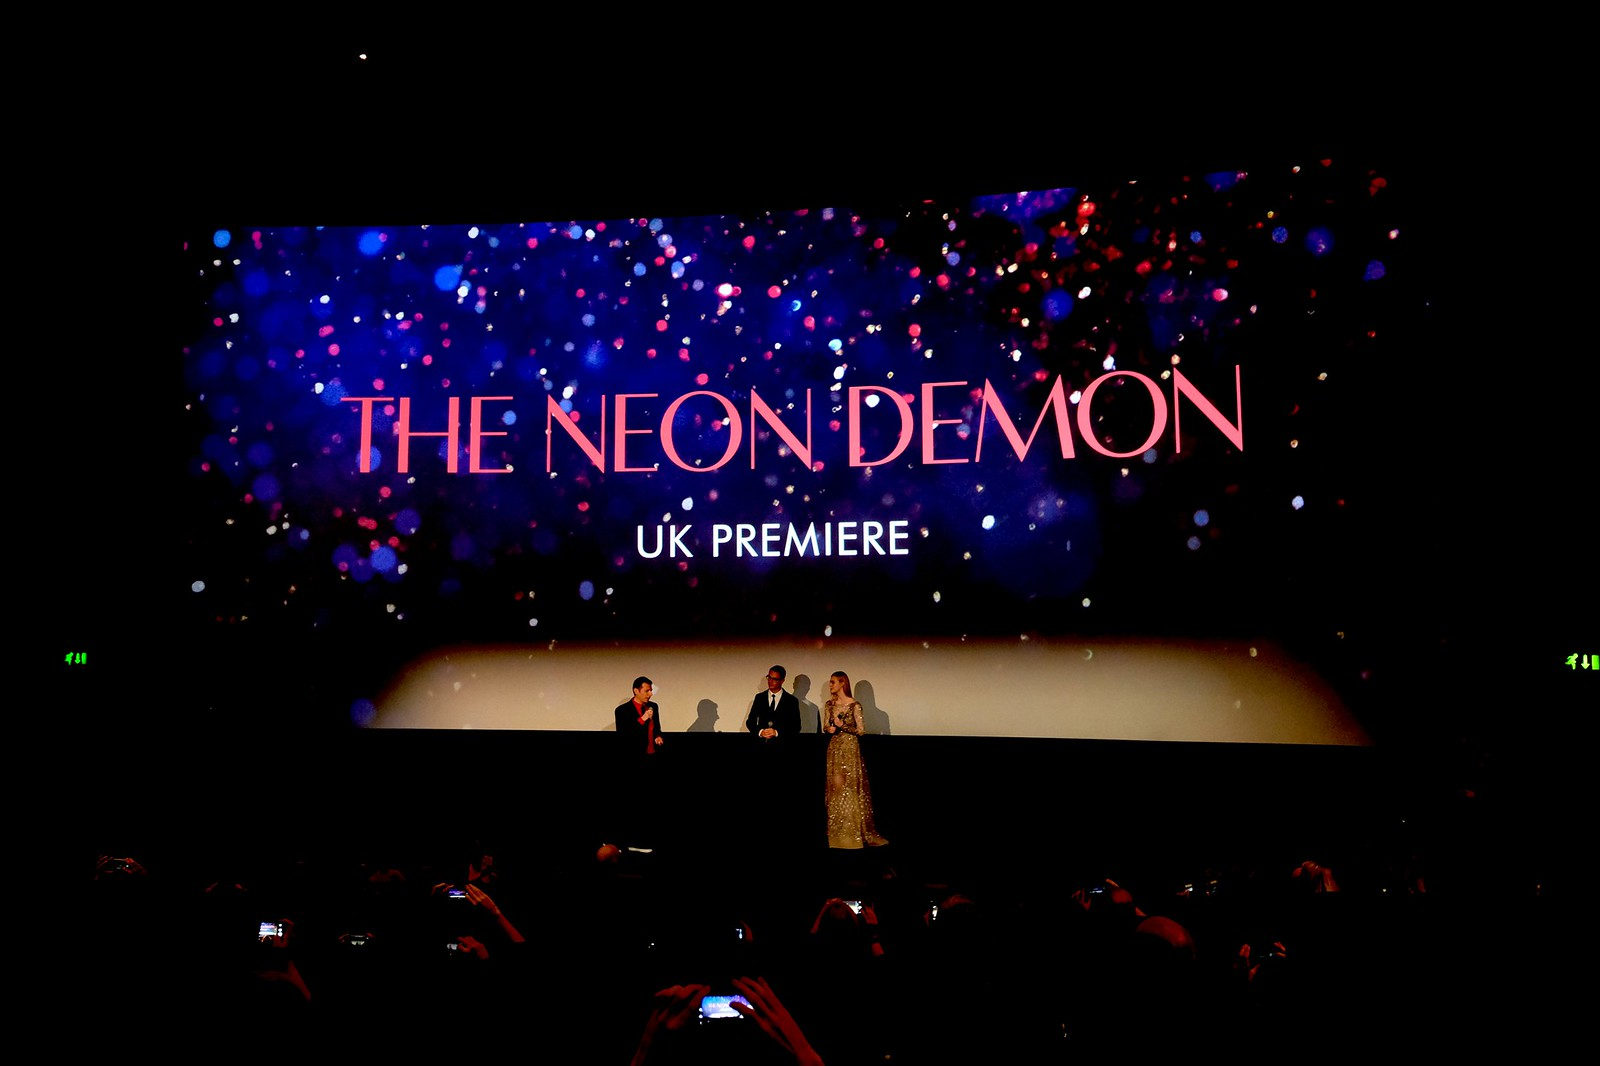 The Neon Demon UK Premiere